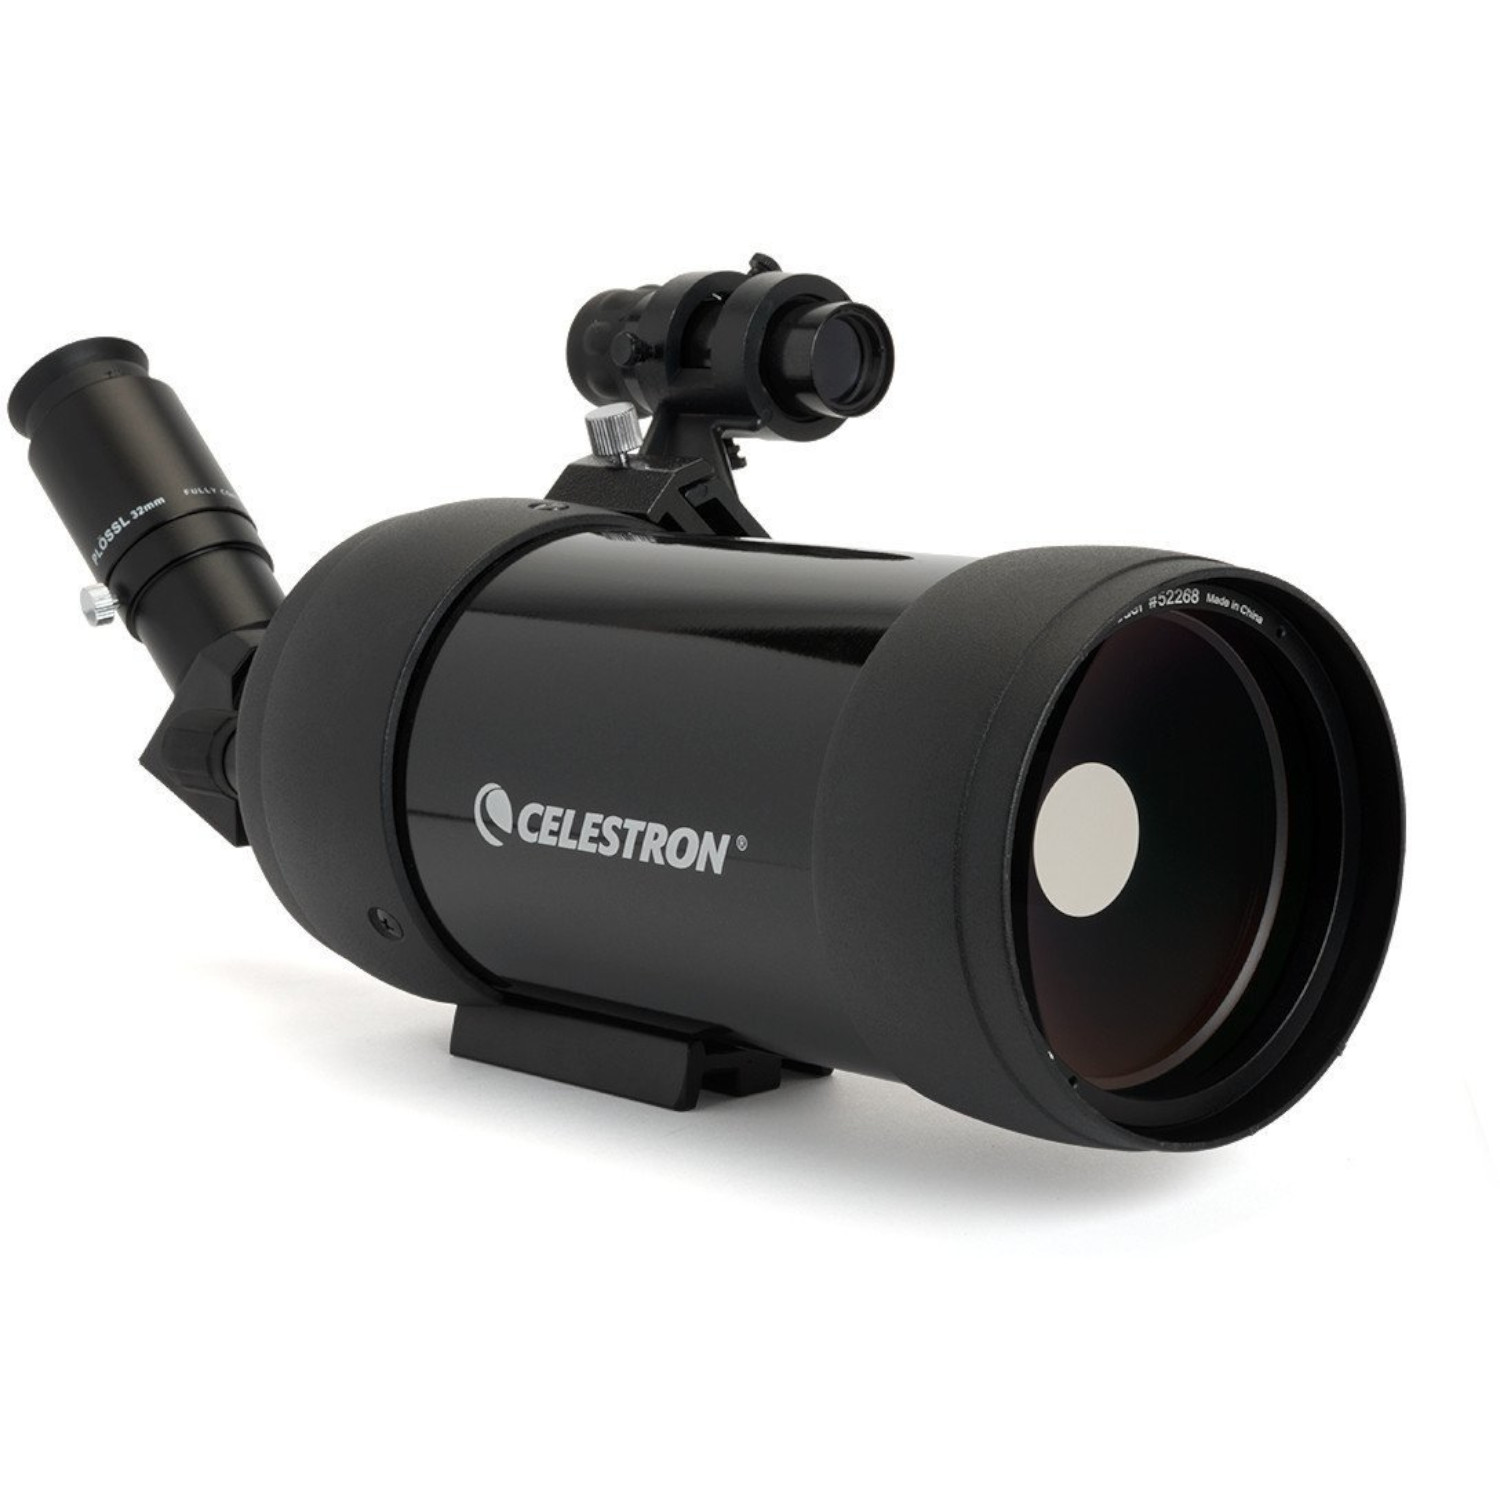 CELESTRON 天体望遠鏡 C90 Mak Spotting Scope —